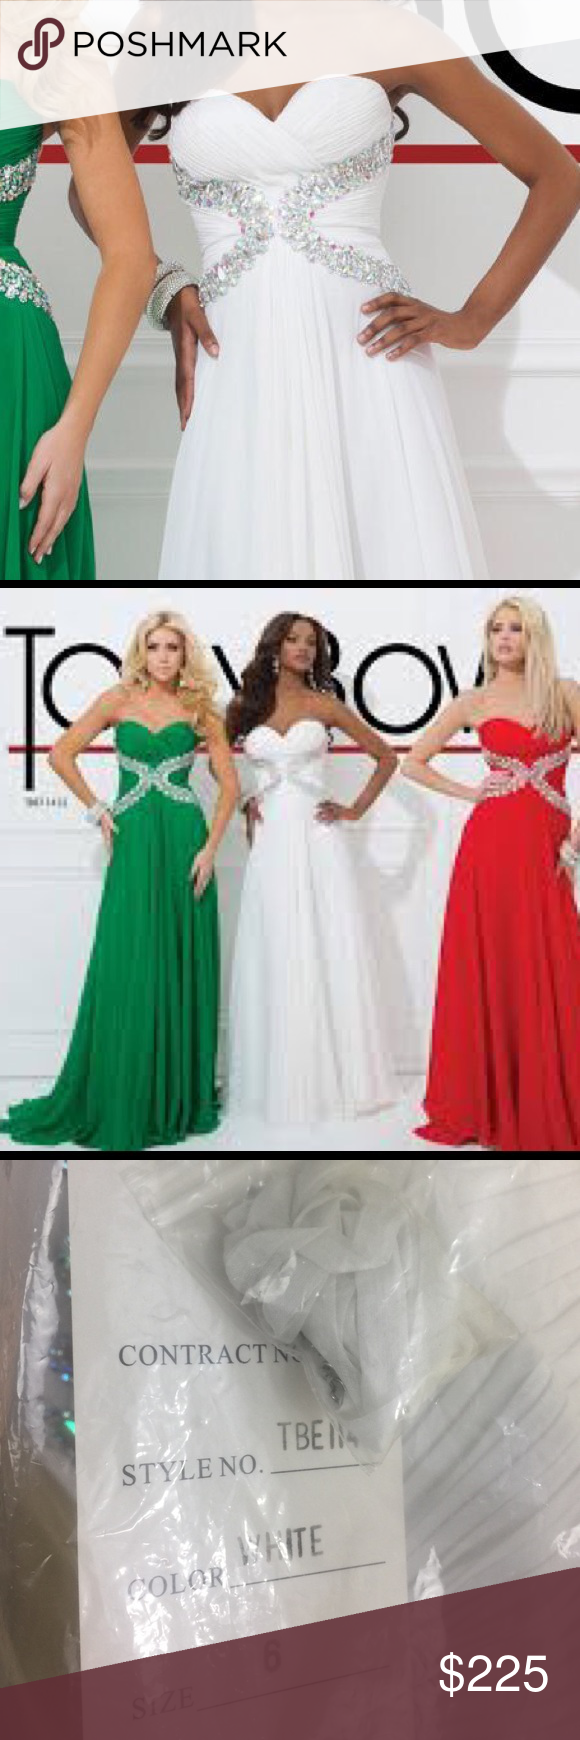 Never worn with tags tony bowls dress beautiful white strapless same pattern of stone in front and back dresses also flowing gown embellished waist by nwt my posh rh pinterest